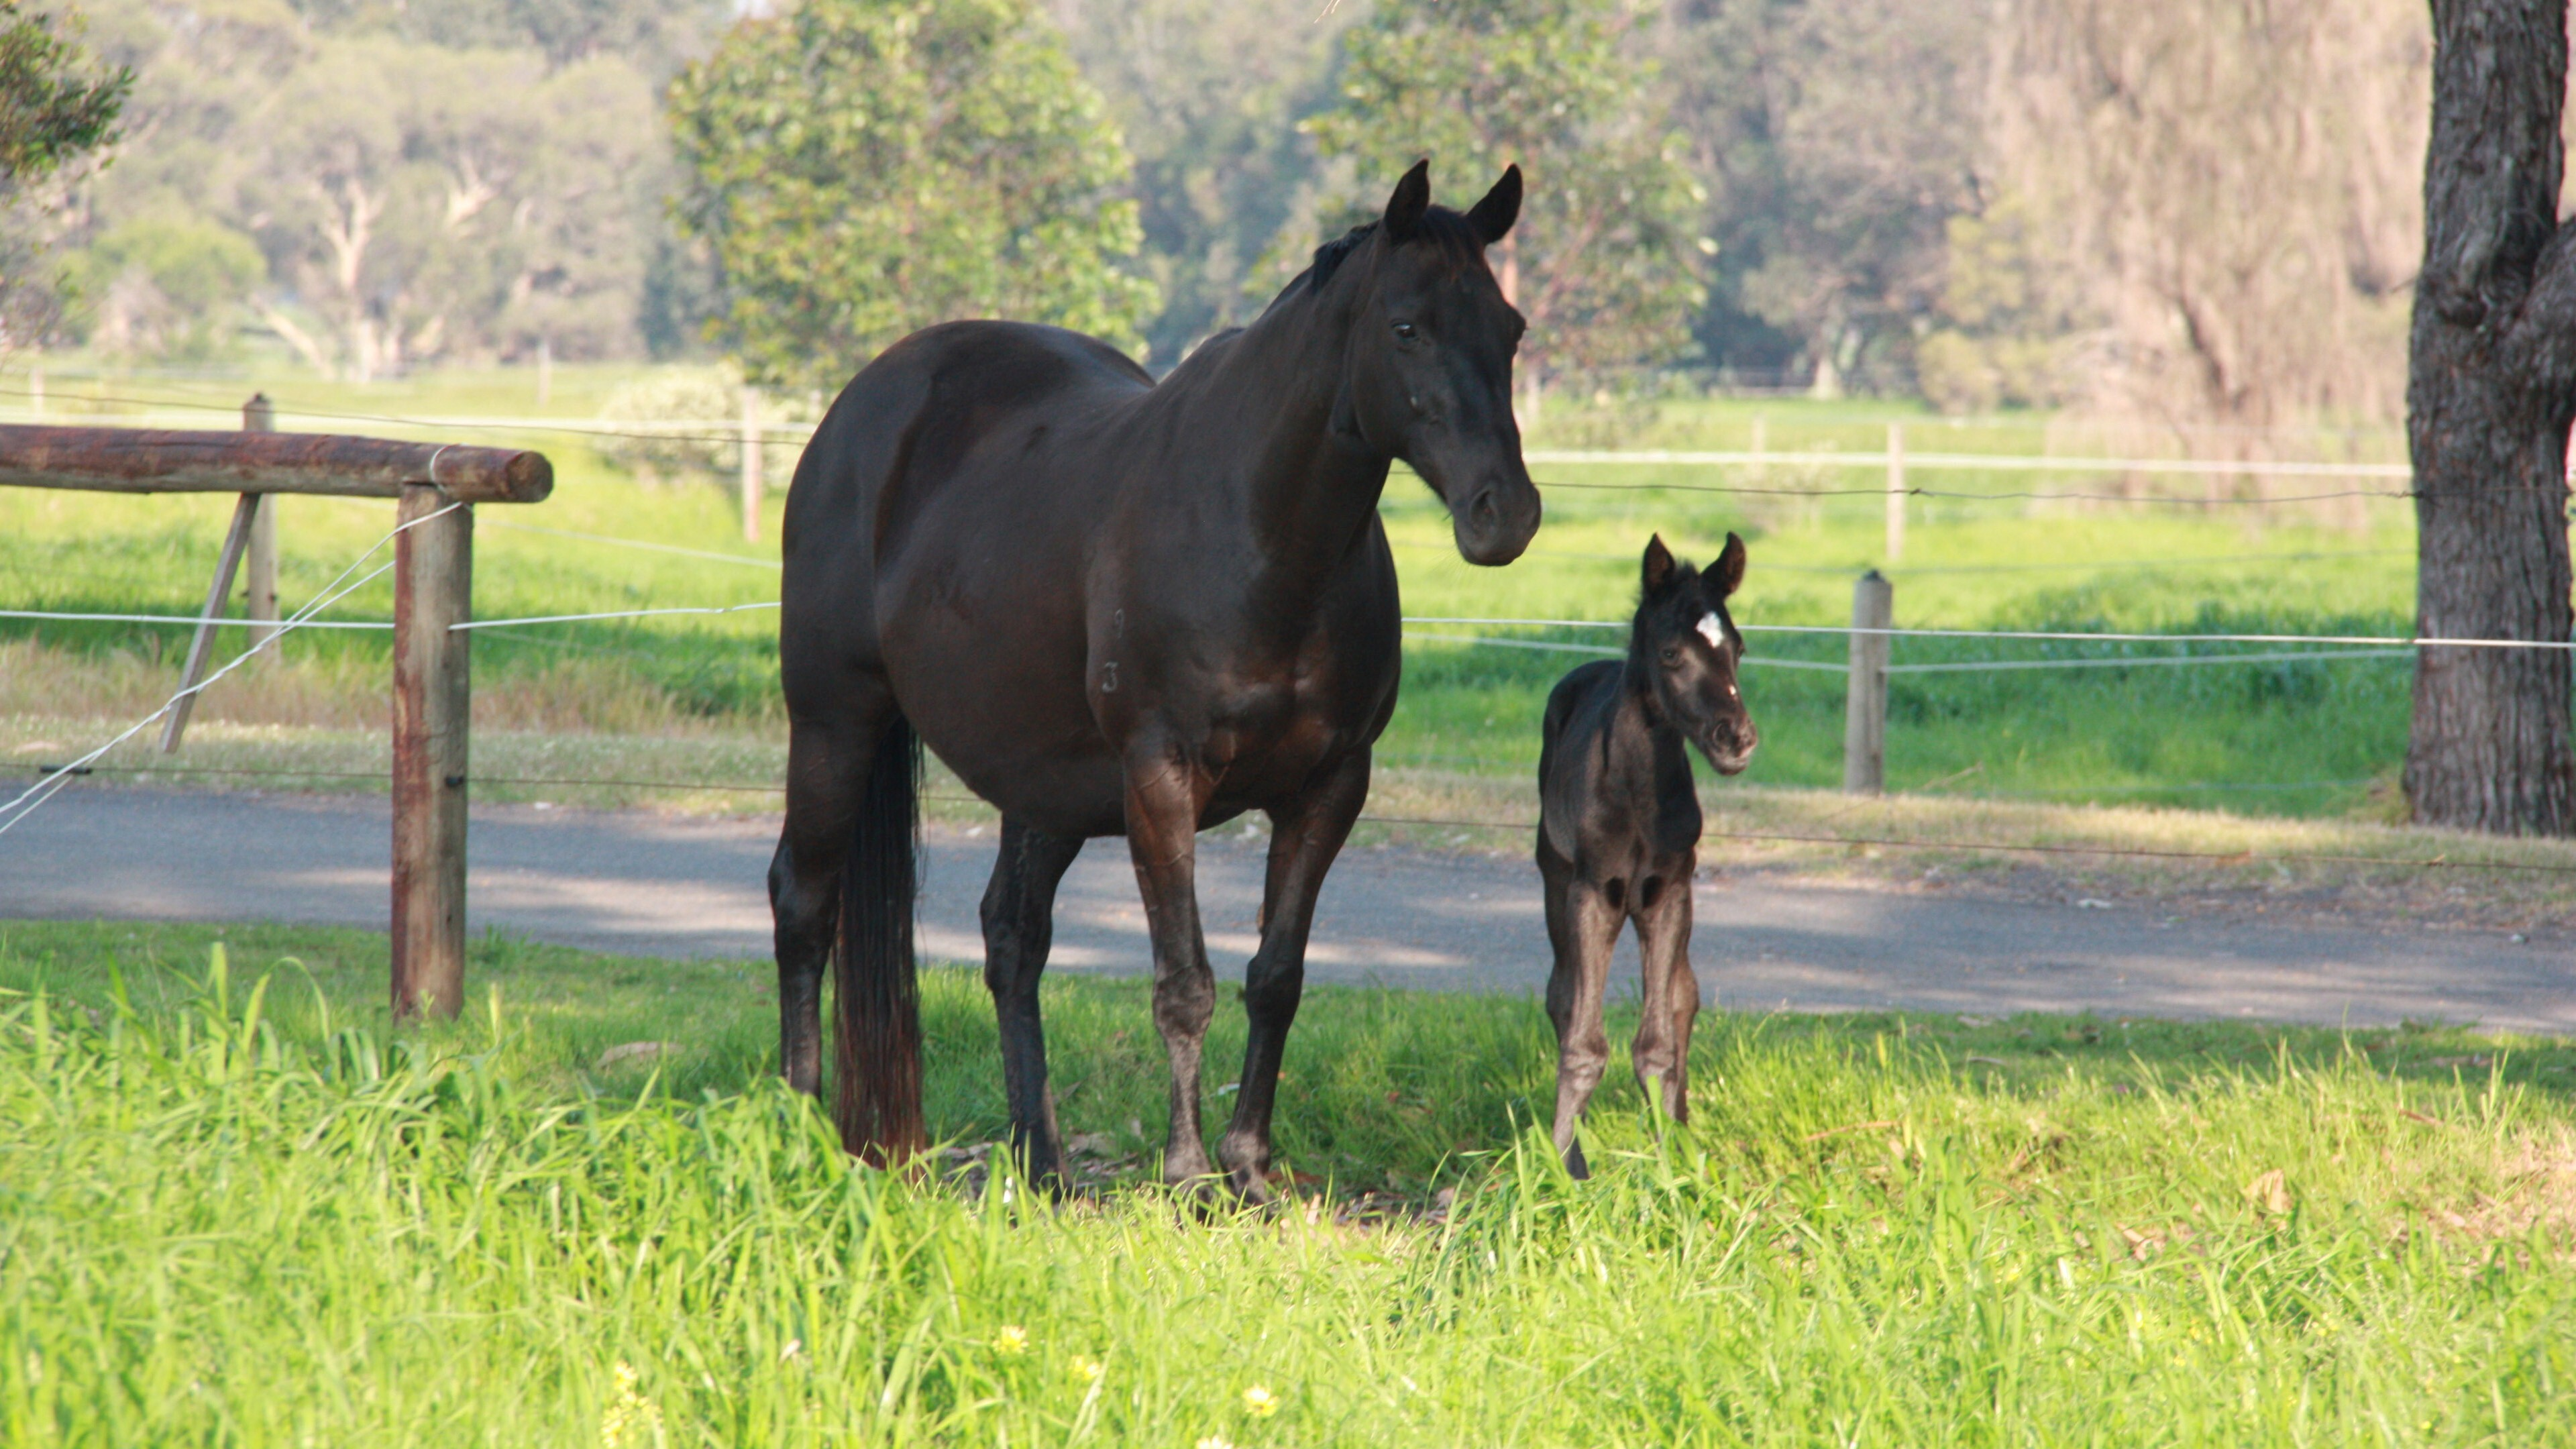 Black Horse With Her Cute Child Hd Wallpapers